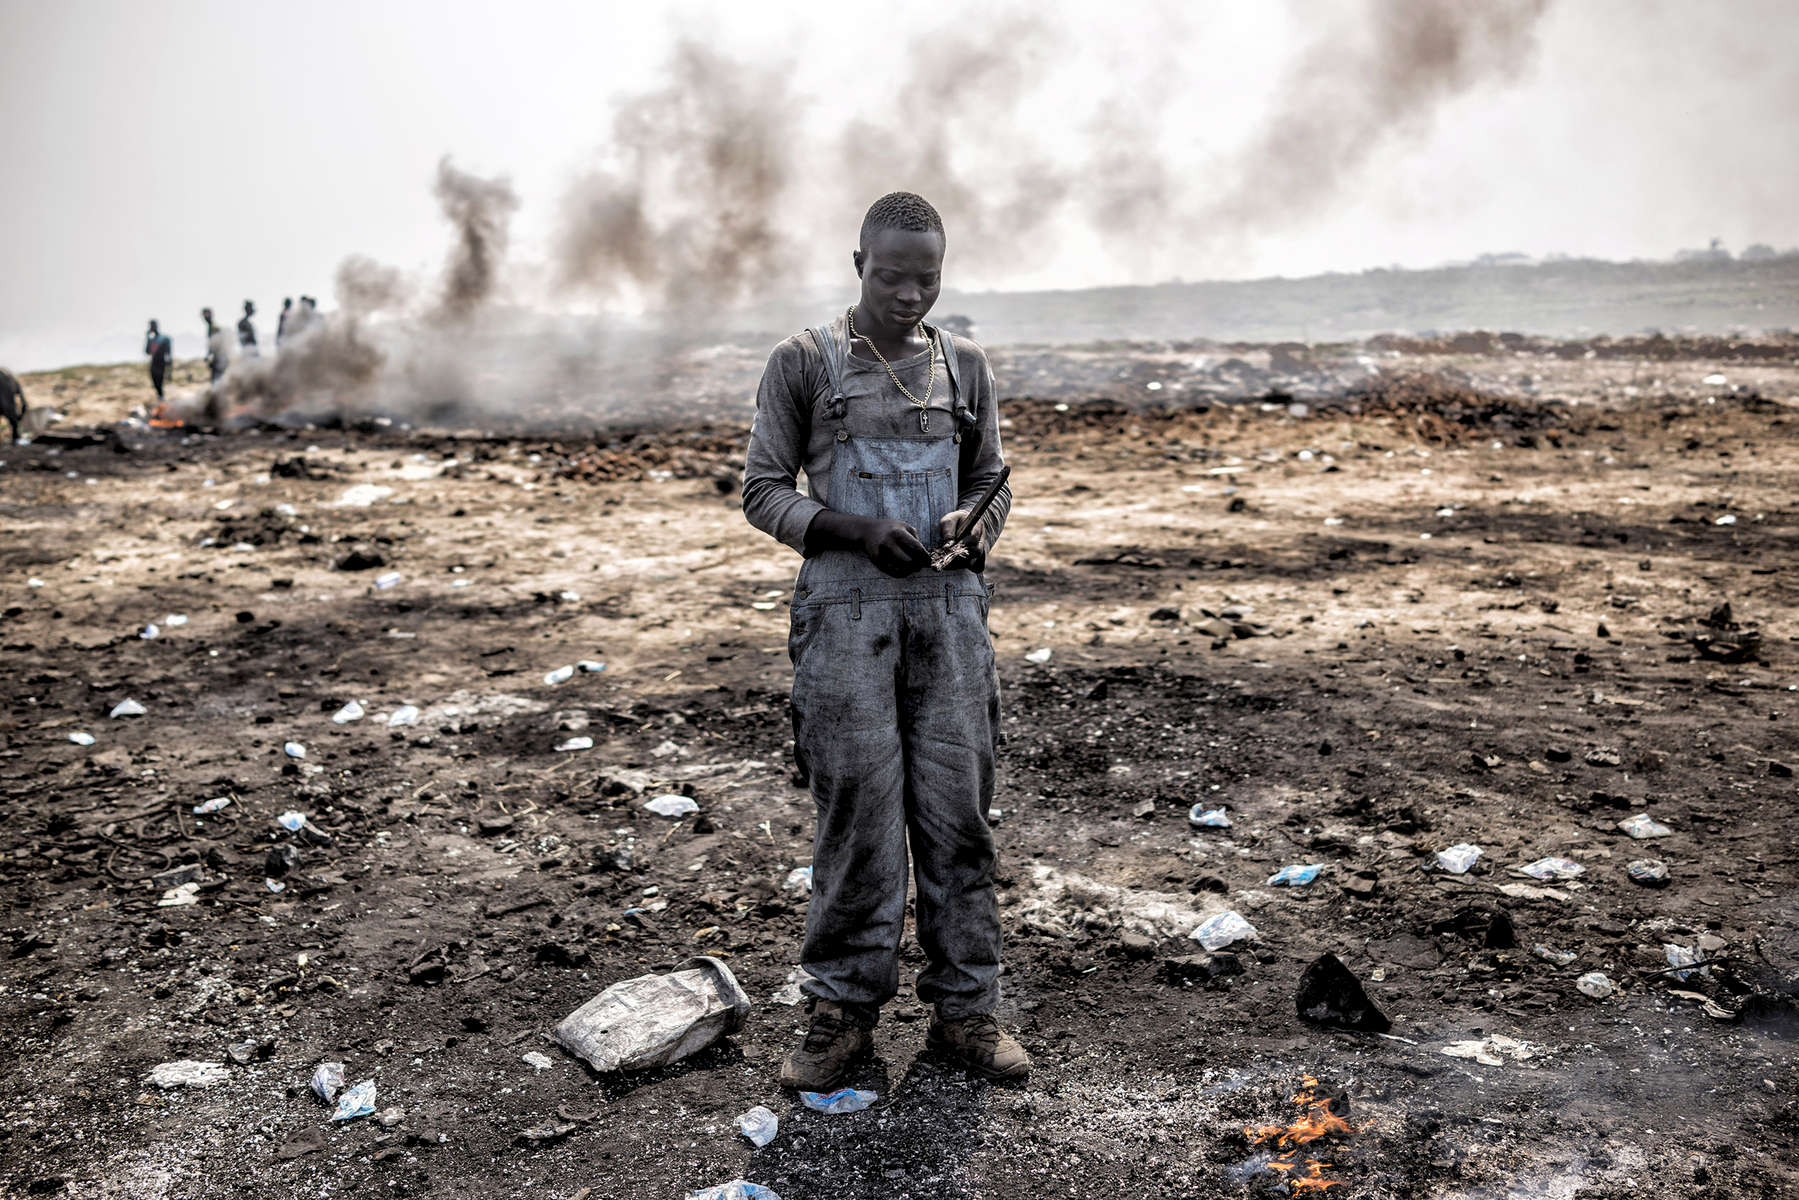 Agbogbloshie, Ghana | December 19, 2015Ernest looks for raw copper among the Agbogbloshie dump's burning fields - where young men - almost all internal migrants from Ghana's northern Tamale region - toil in toxic smoke, burning down manufactured parts into their basic copper components. The dump works with a specific process. First there are the buyers of the waste, men who cart in used computers, automobiles and any other junk they can get their hands on. In turn this manufactured garbage is sold to small {quote}storefronts{quote} in the dump that distribute it to the younger men to burn. Below that strata of employment are the boys that walk through the debris fields picking up the copper remains hoping to collect enough to fill a kilo bag. The resulting raw copper is sold back to construction and mineral component wholesalers, which reintroduce the recycled copper back into the world market. A wetland suburb of Accra, Agbogbloshie is home to a vast dumping ground - once labeled the world's largest e-waste site - that covers an unstable swamp, the garbage and soot a carpet that sways with every step, sometimes swallowing new migrants who arrived hoping to make a slim income to feed themselves each day.